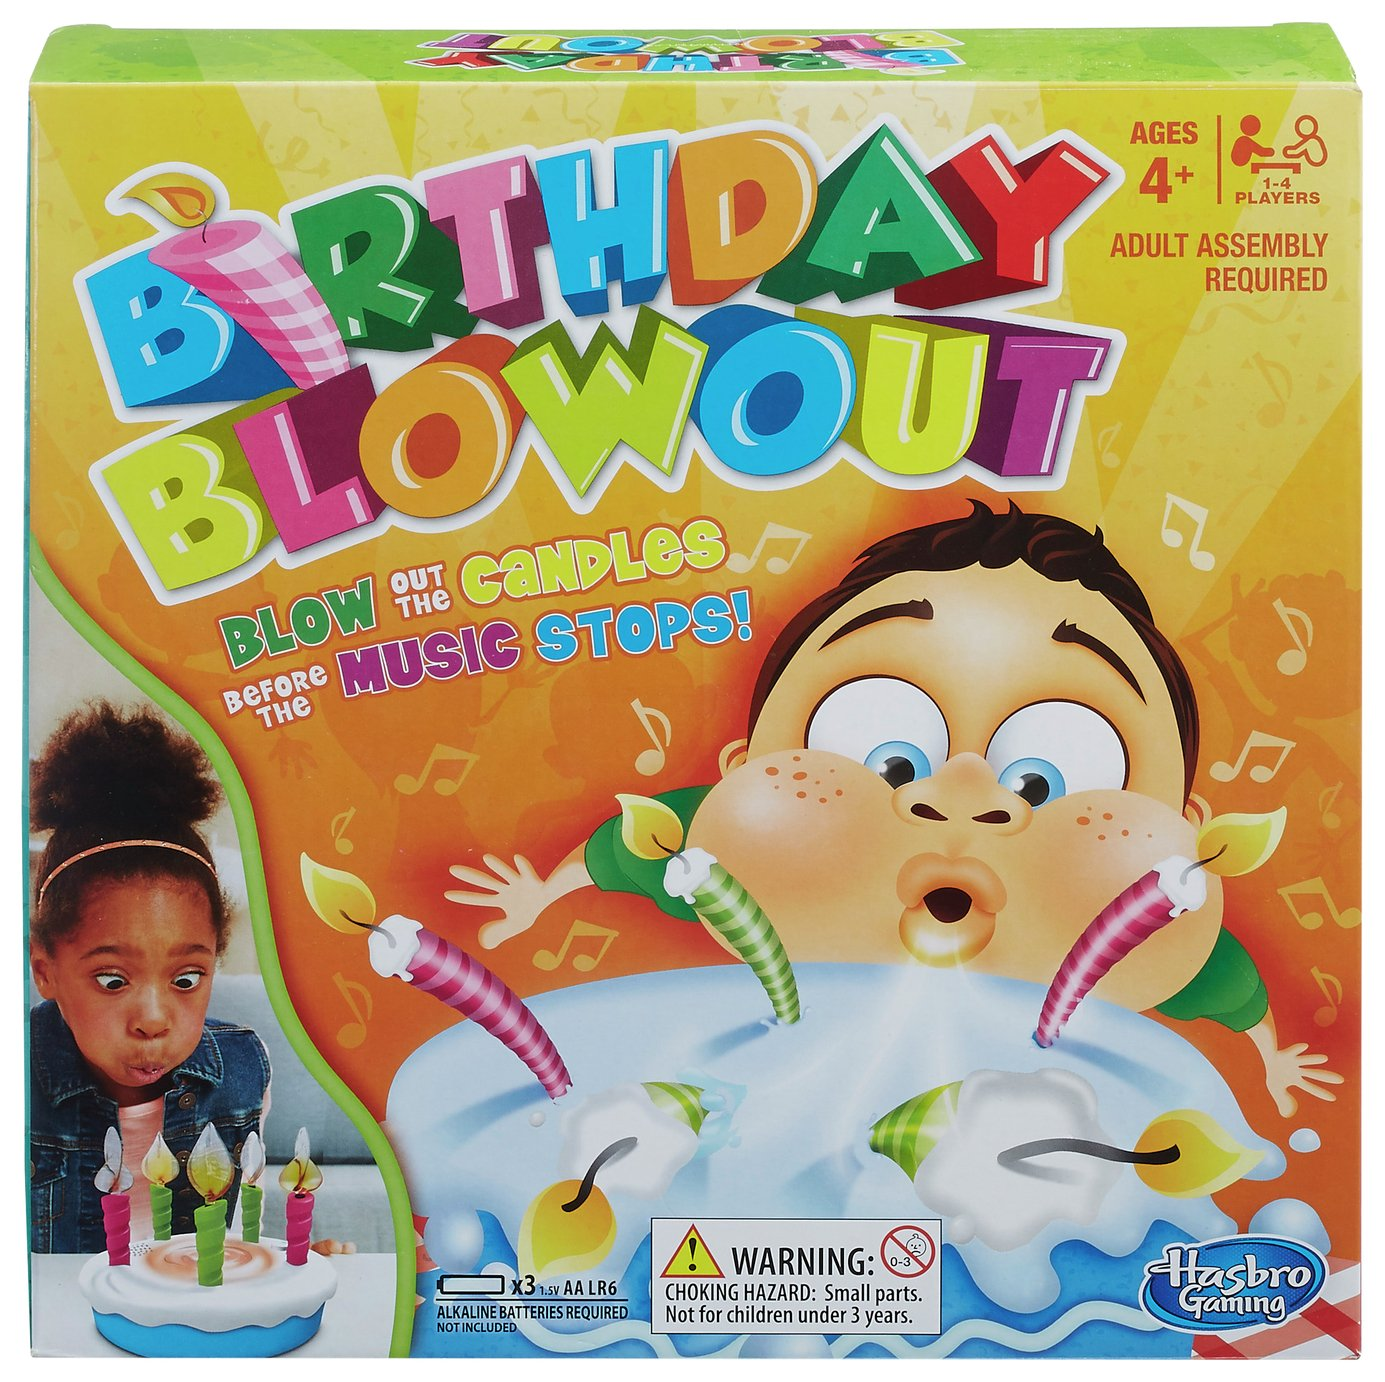 Image of Birthday Blowout Game from Hasbro Gaming